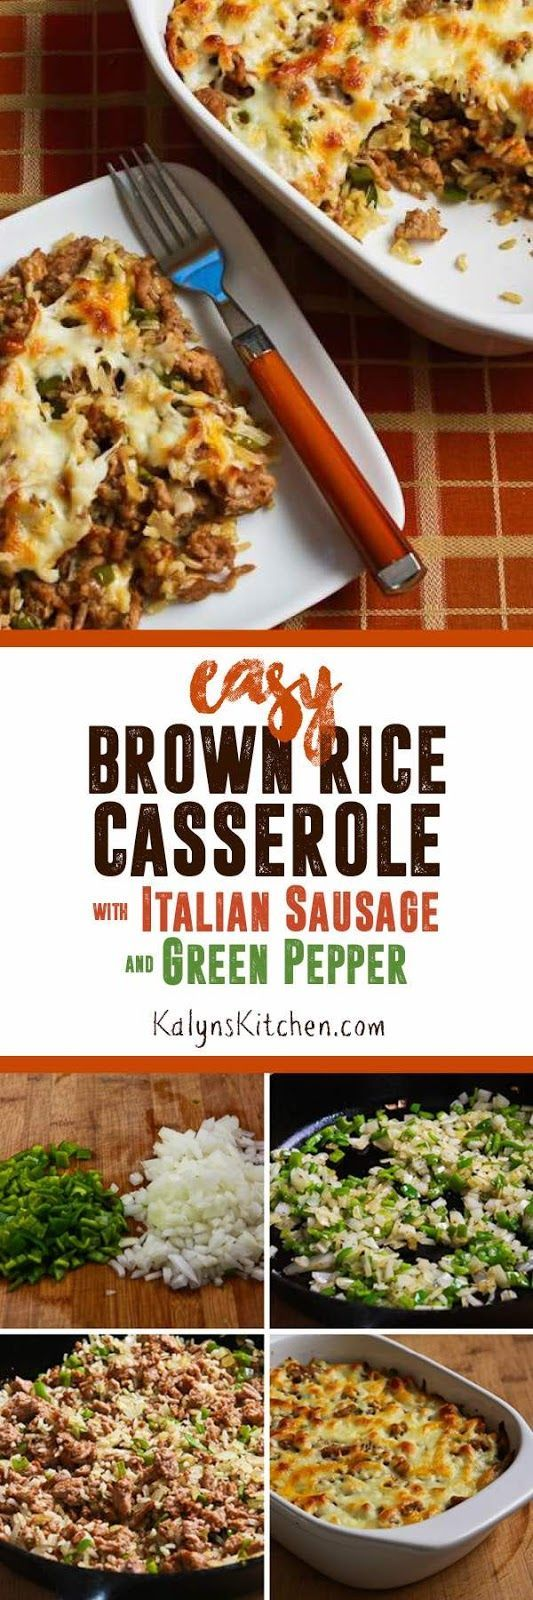 Using lots of sausage, peppers, and cheese and not much rice makes this Easy Brown Rice Casserole with Turkey Italian Sausage and Green Bell Pepper a delicious carb-conscious meal. For lower-carbs, there are also suggestions in the recipe.